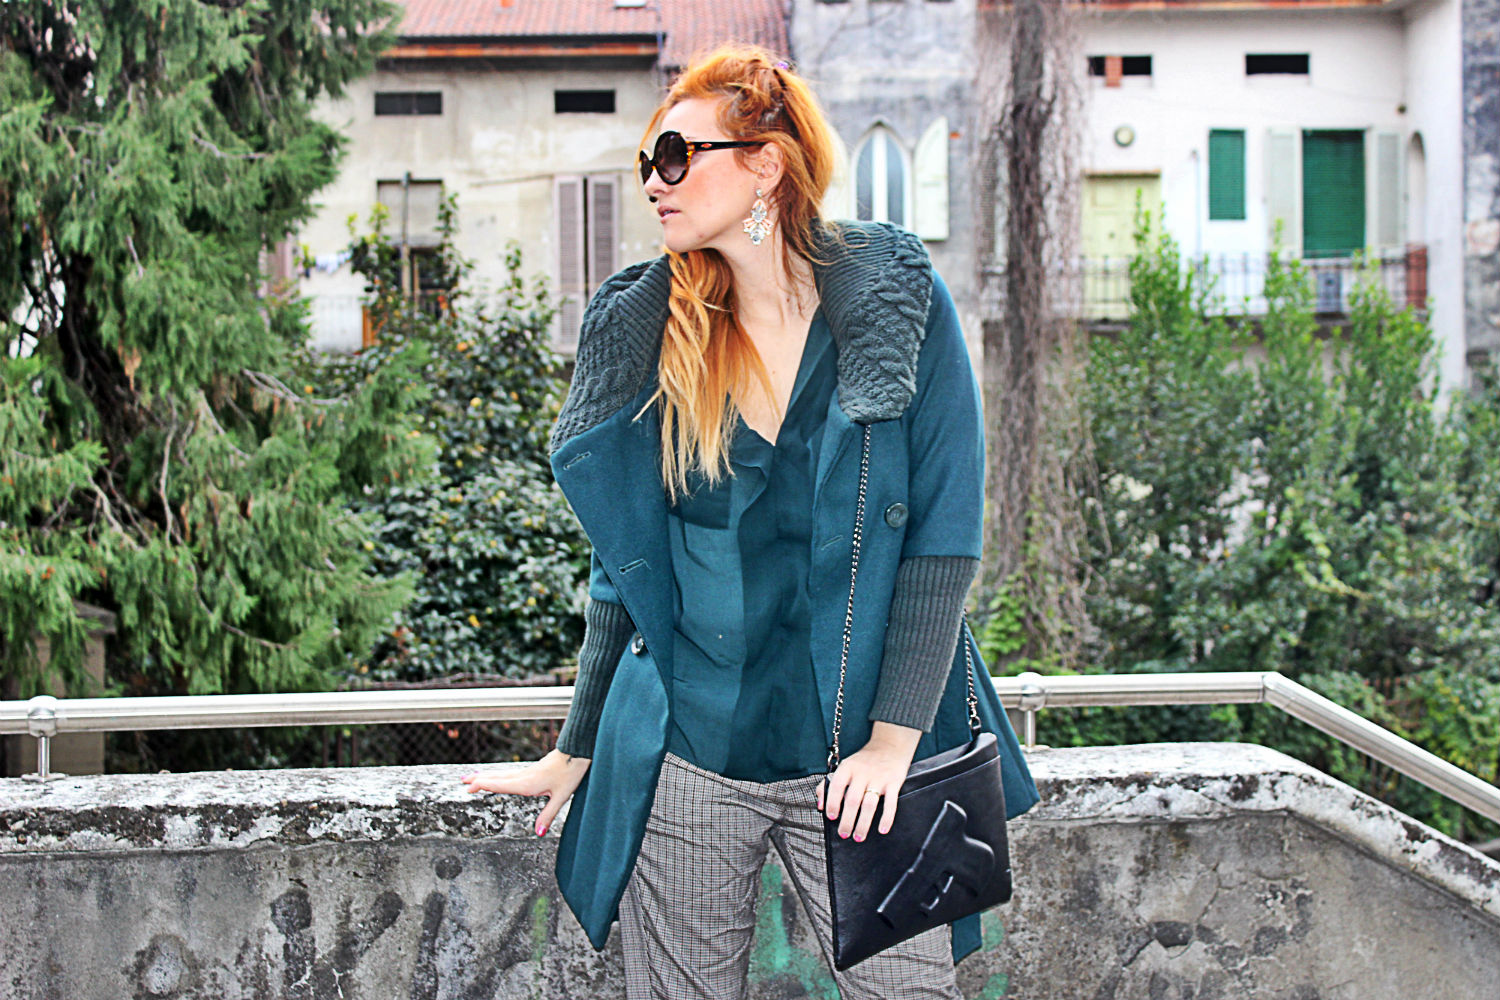 elisabettabertolini - fashion blogger - top influencer - bighet fashion